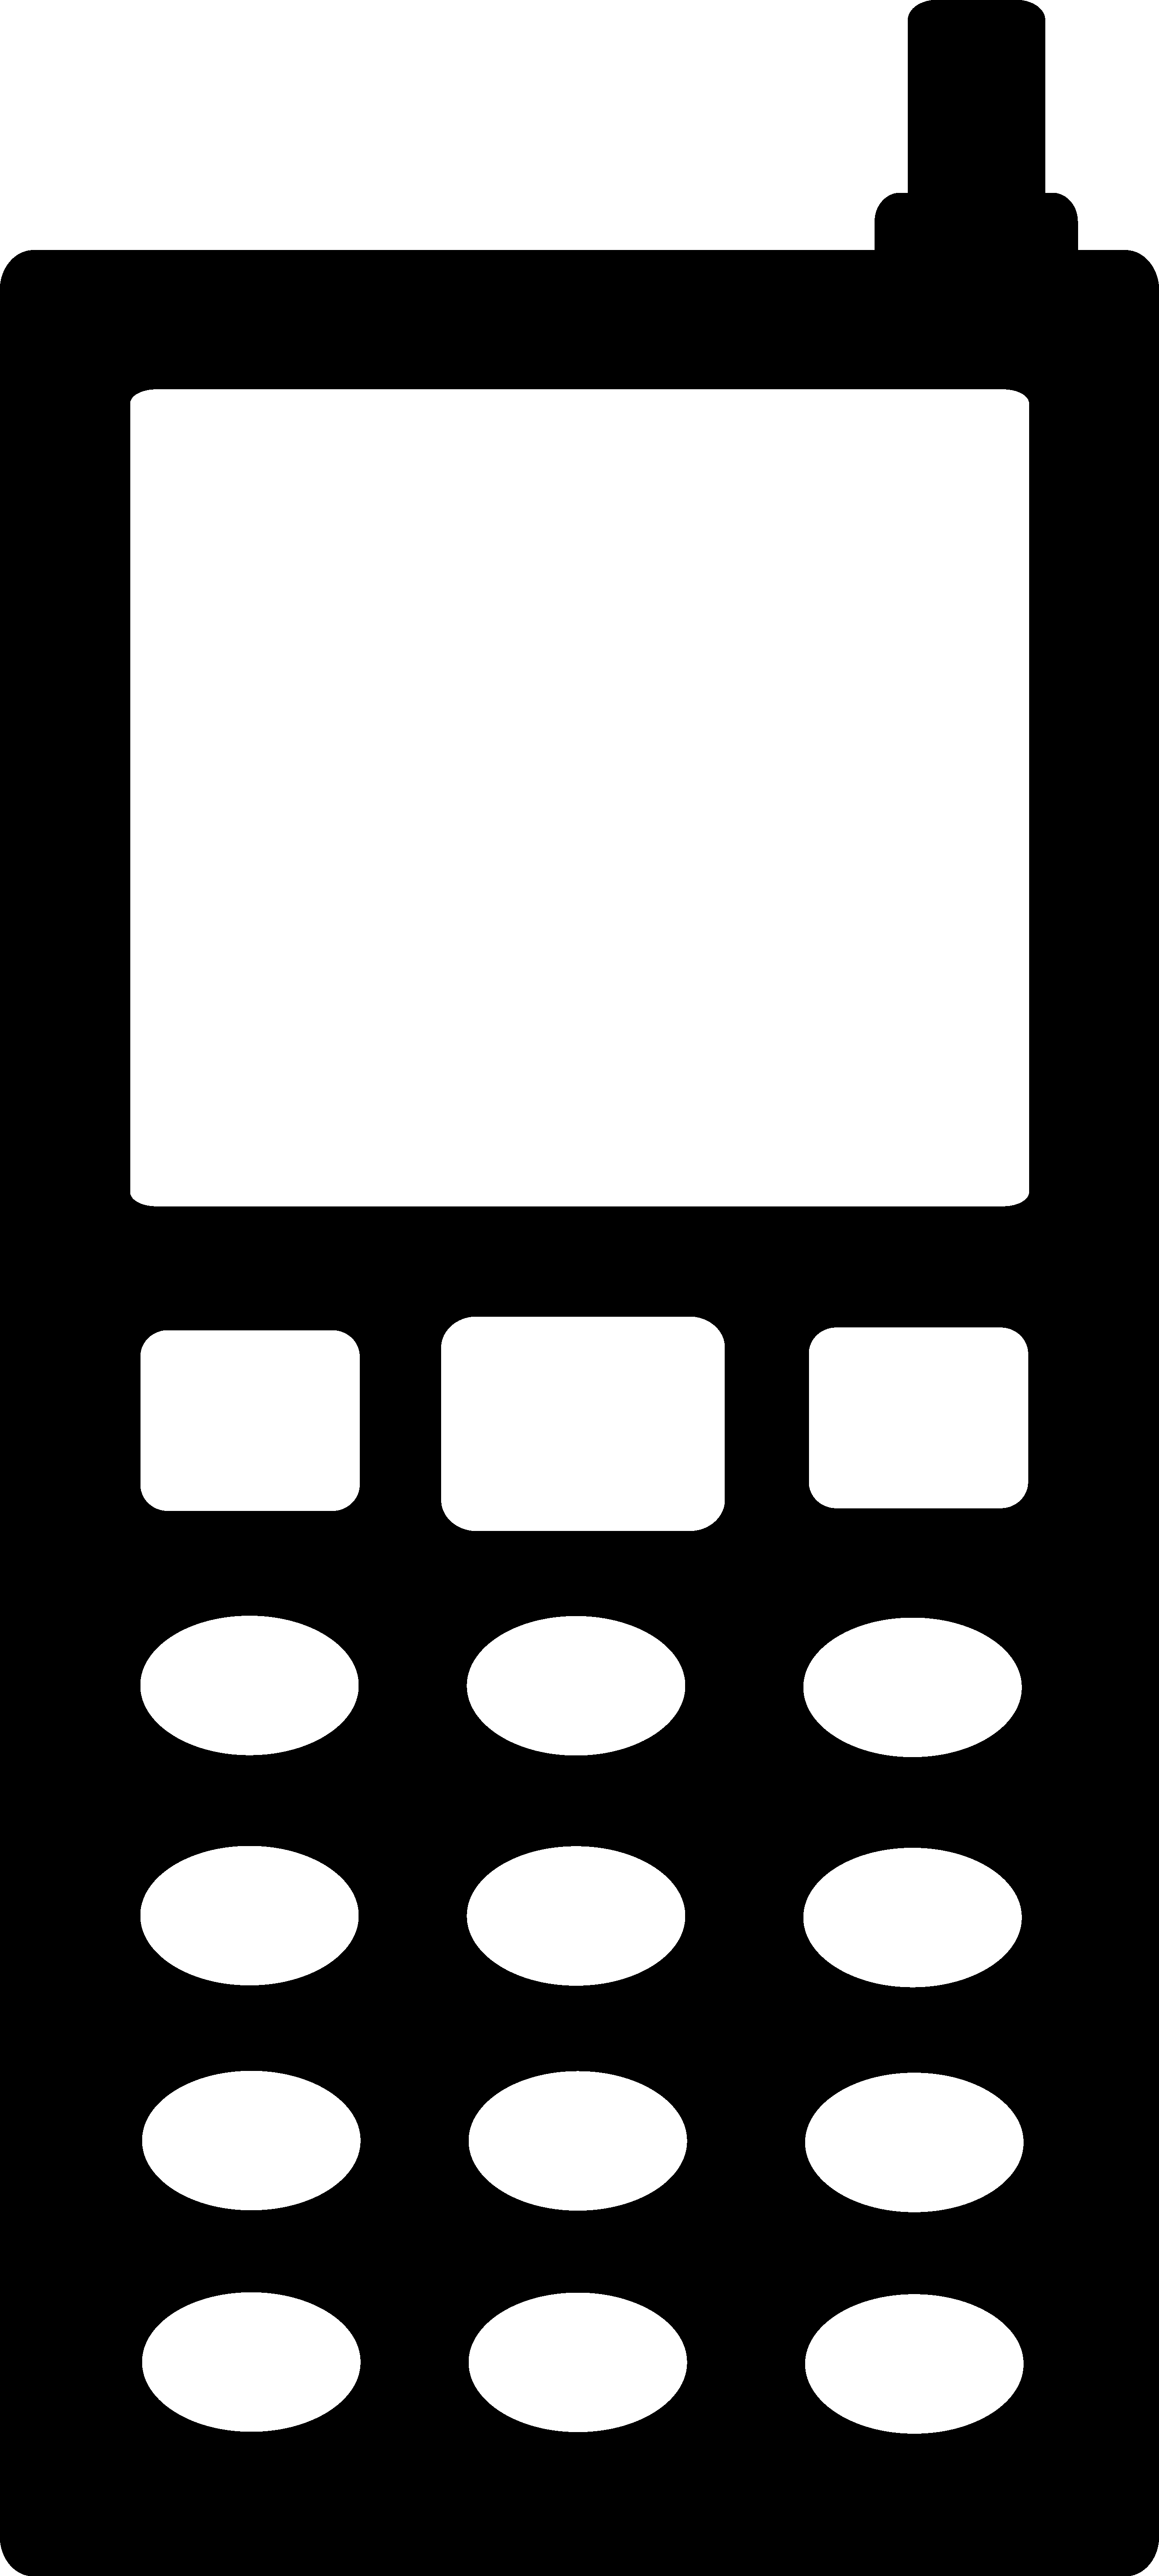 Free Phone Icon Cliparts, Download Free Clip Art, Free Clip Art on ... jpg transparent library